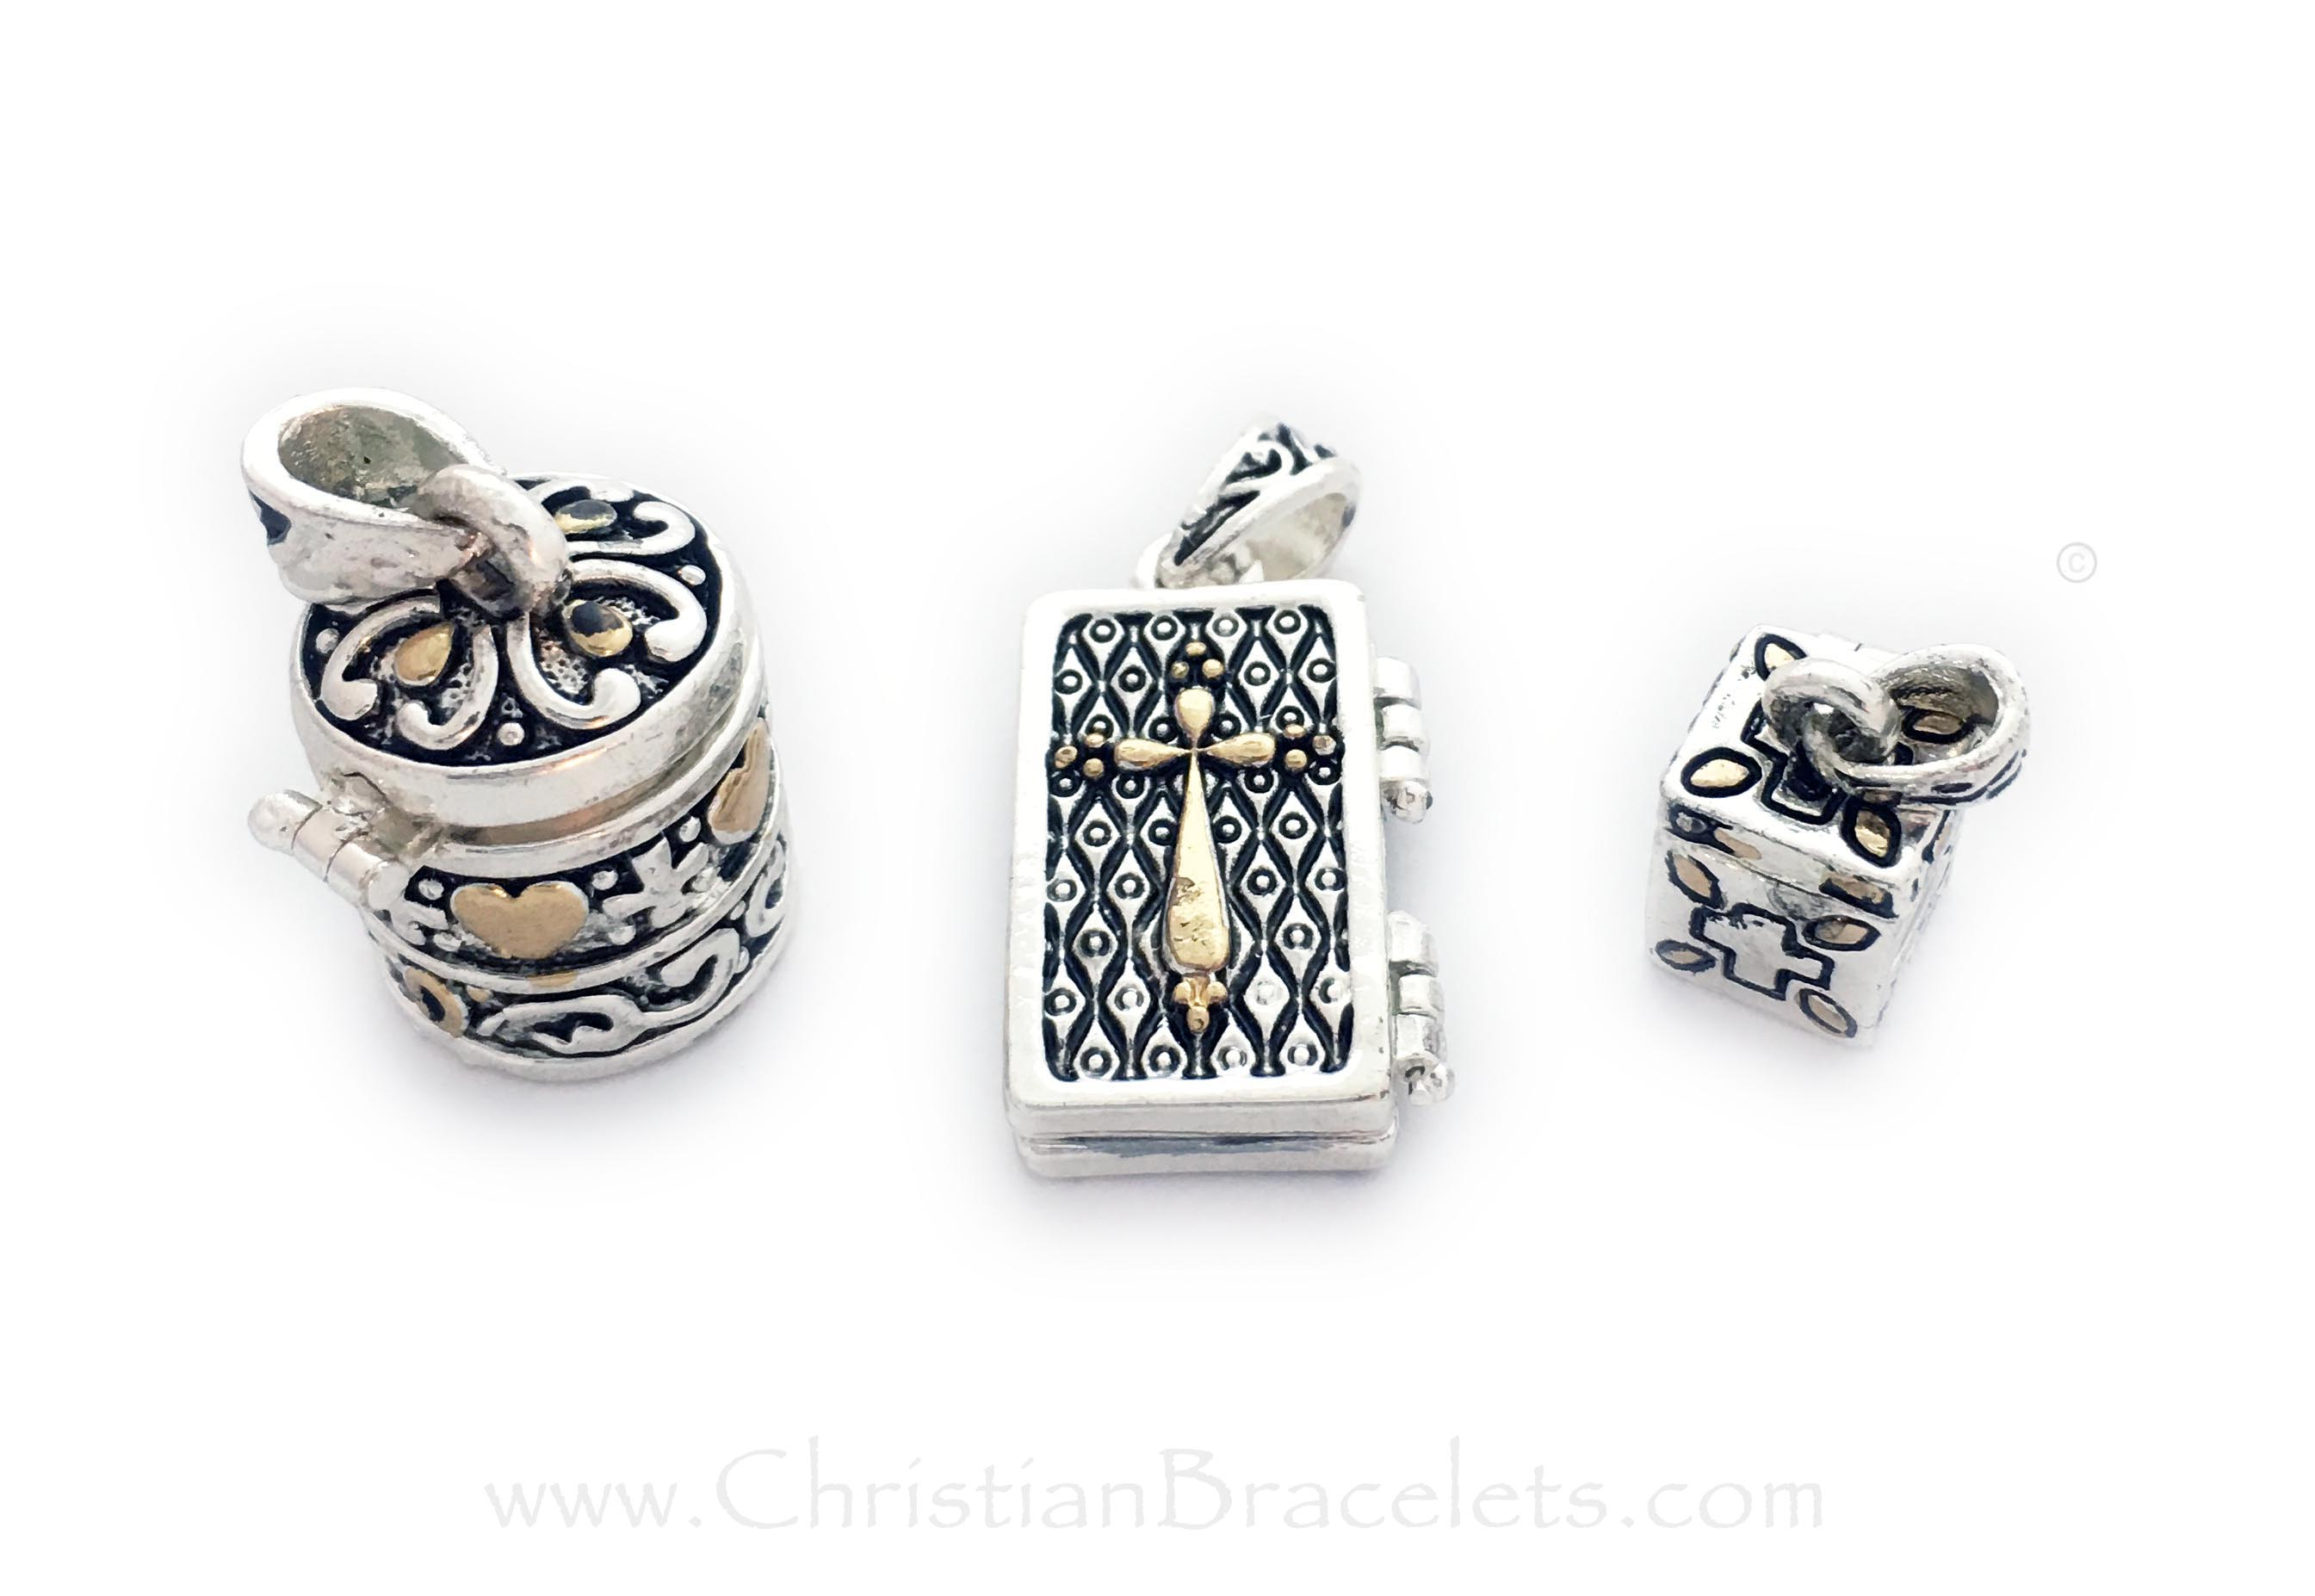 CB-Prayer Box Charms Prayer Box Charms - Round, Rectangle and Square shown Sold Individually